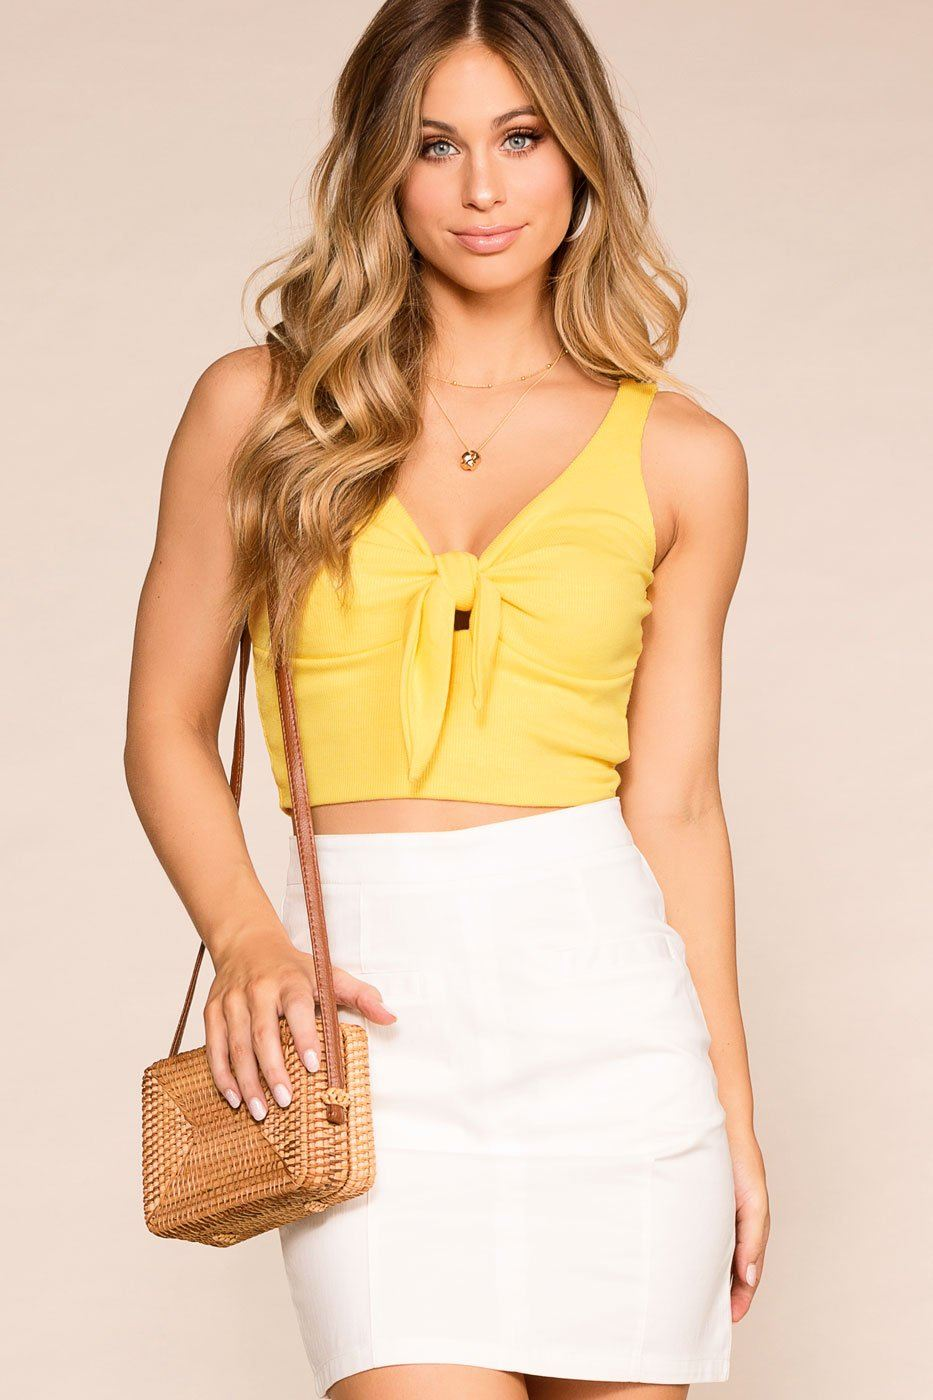 618b86b1ac9f A Little Sunshine Yellow Crop Top